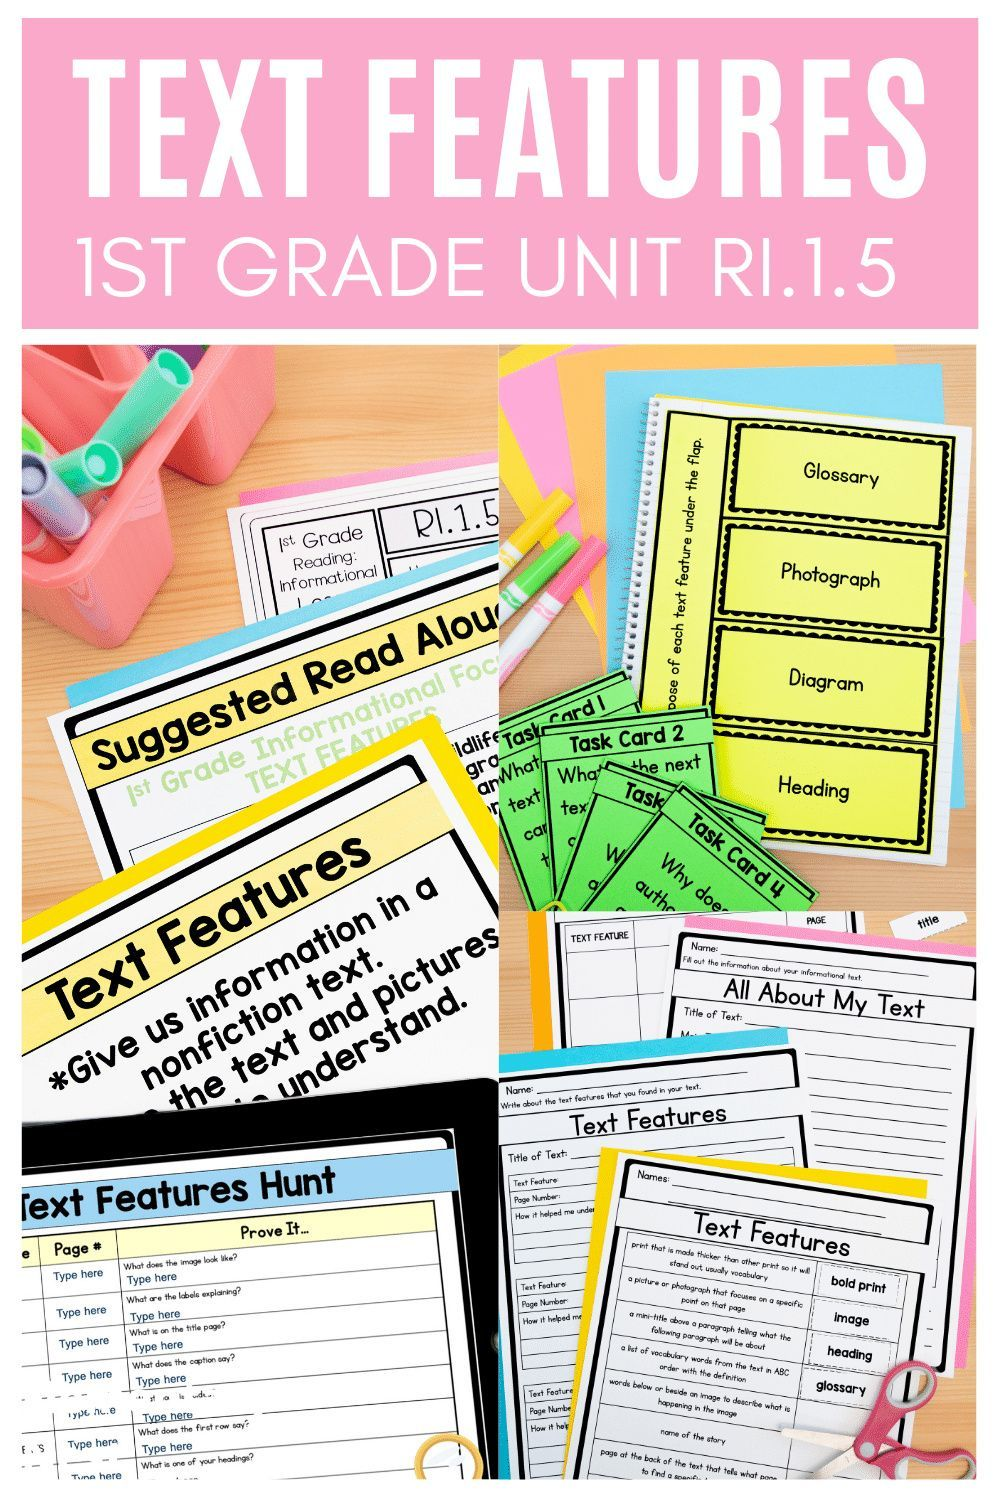 Nonfiction Text Features 1st Grade Ri1 5 With Digital Distance Learning Links Nonfiction Texts Teaching Common Core Nonfiction Text Features